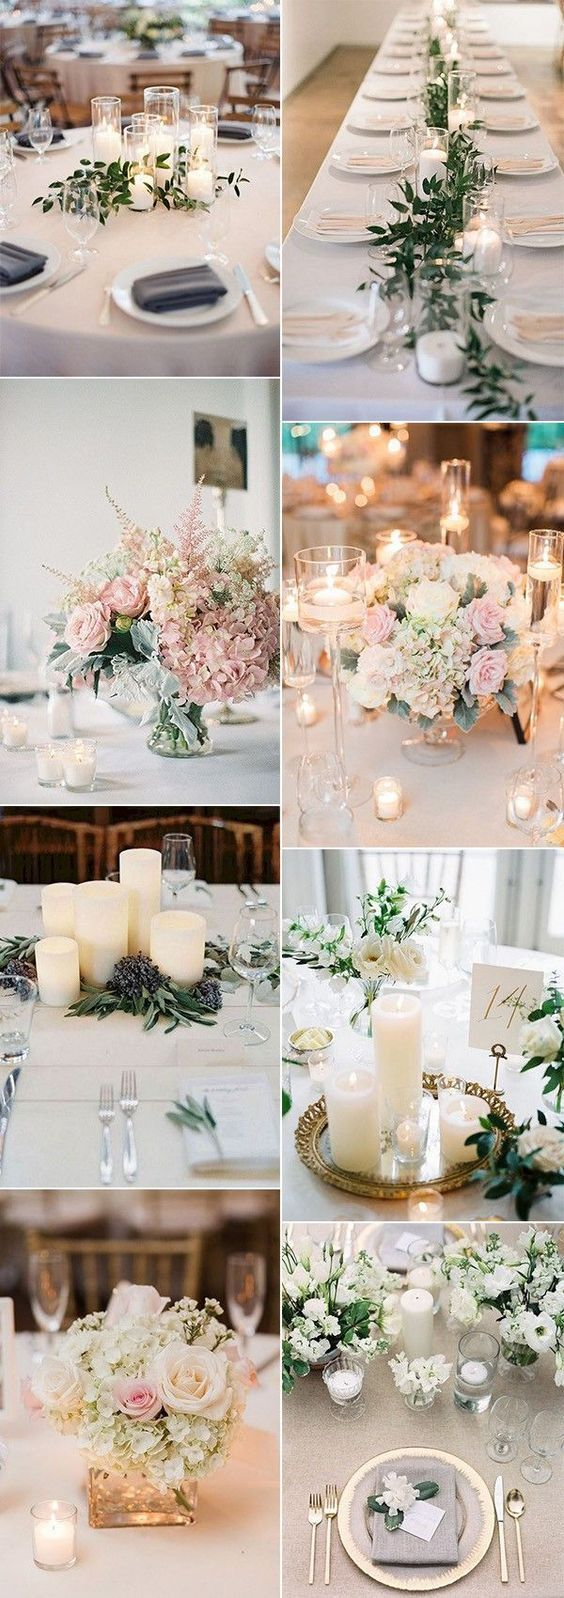 Wedding room decoration ideas 2018   Elegant Wedding Centerpieces with Candles for  Trends